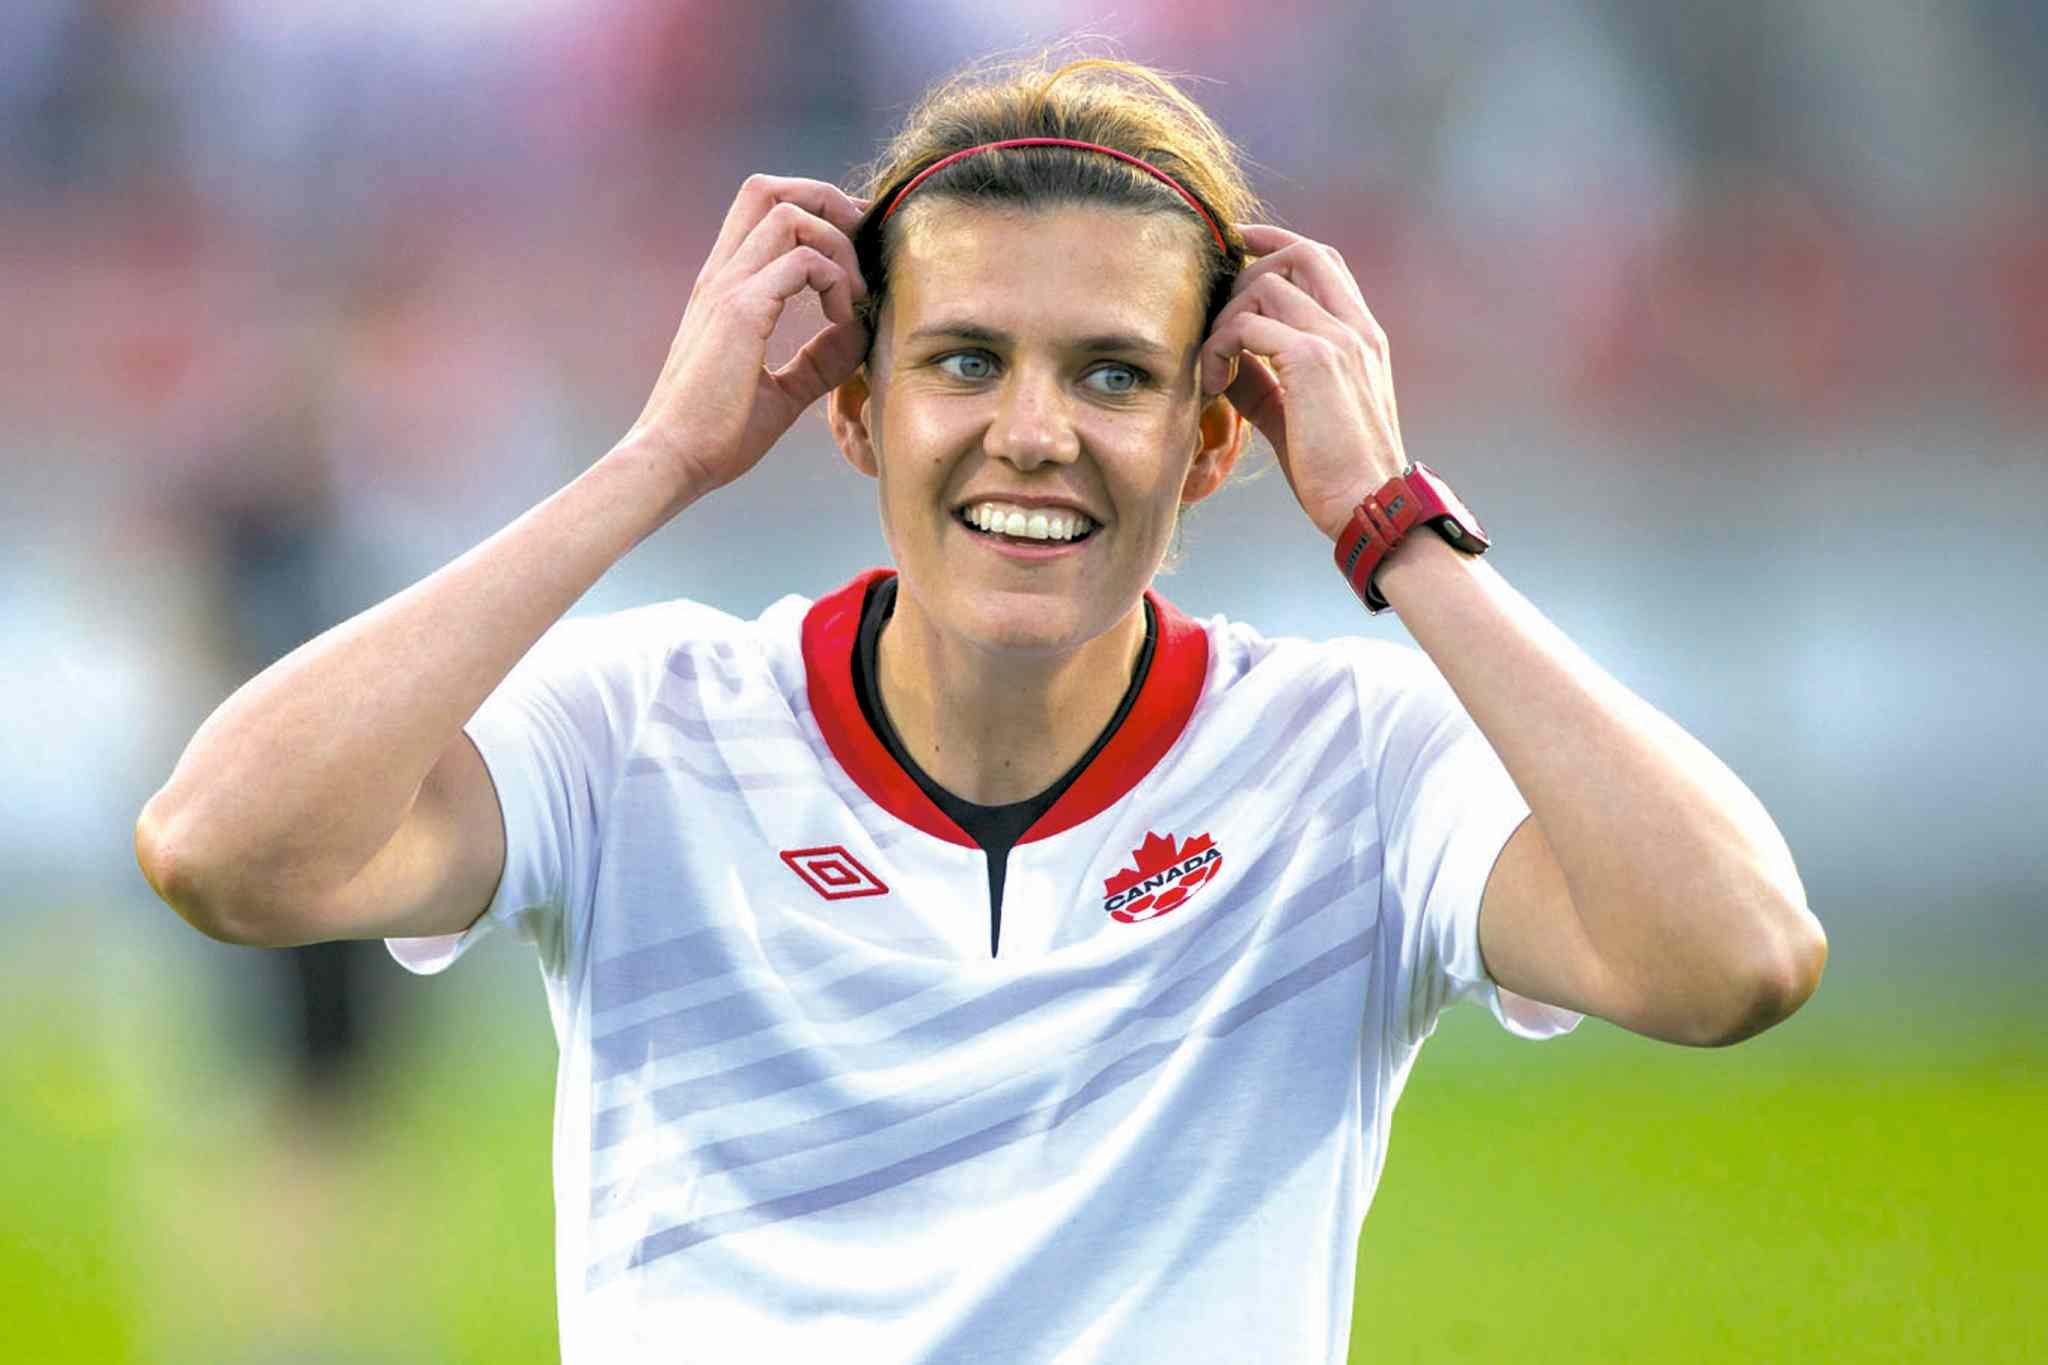 Canada's soccer star Christine Sinclair will join the Walk of Fame on Oct. 27 in Toronto.